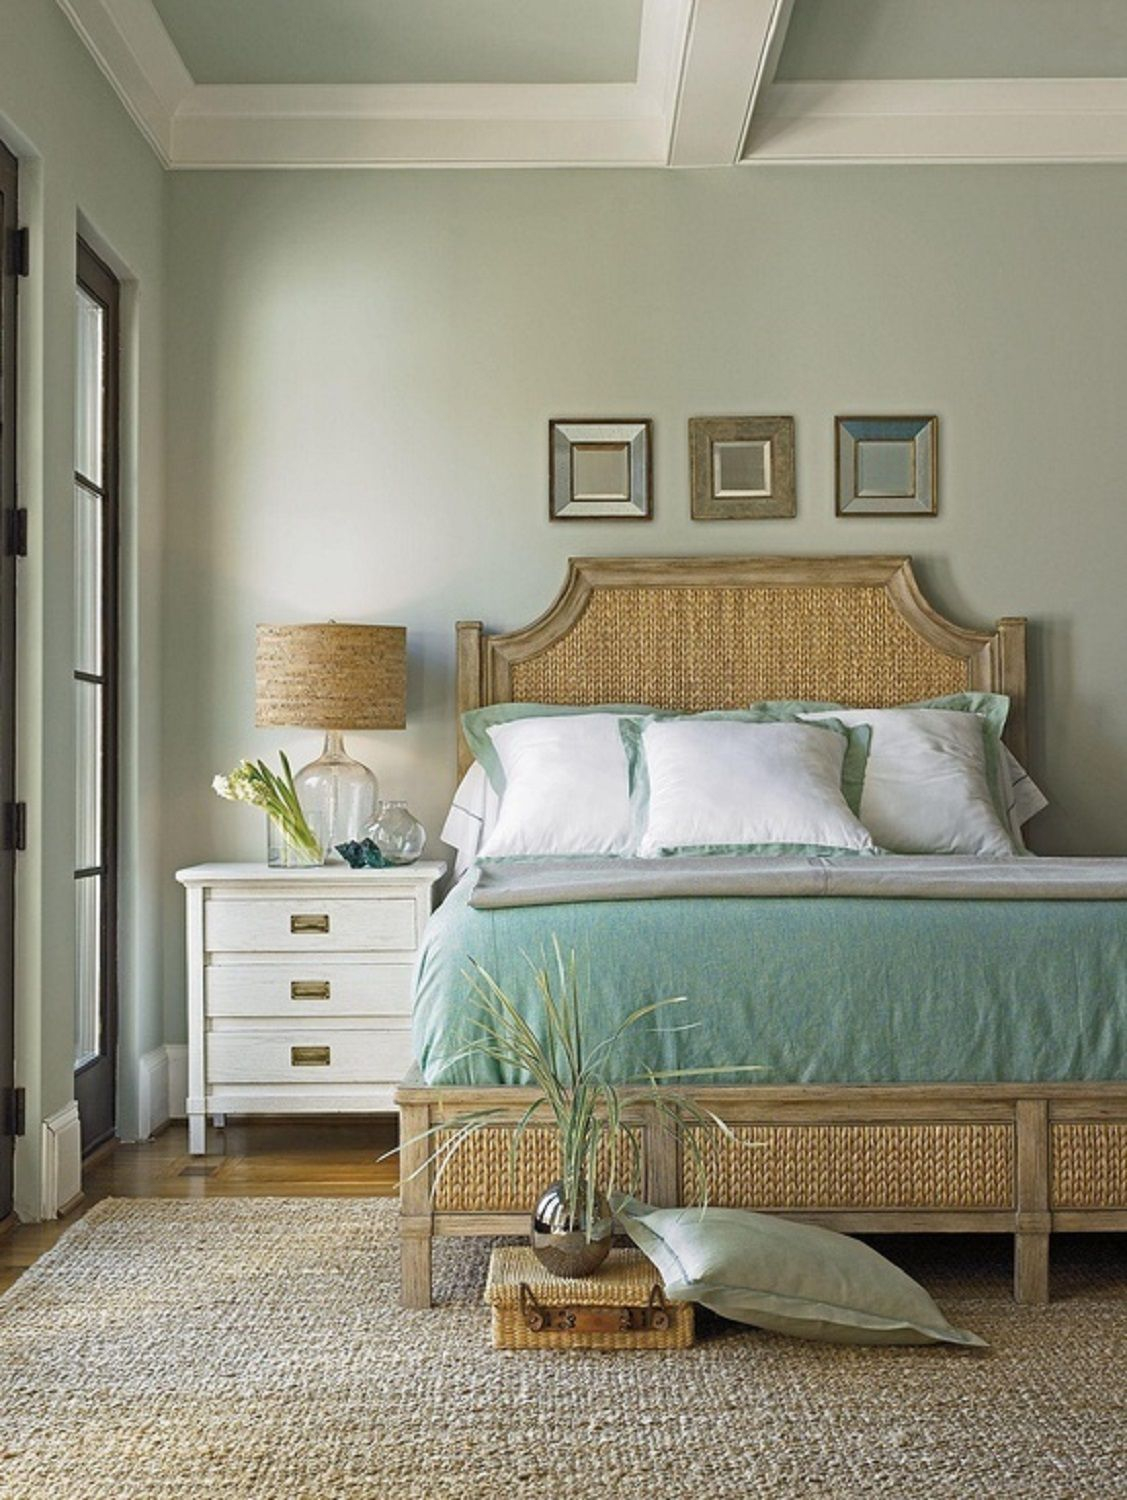 50 Gorgeous Beach Bedroom Decor Ideas with dimensions 1127 X 1500